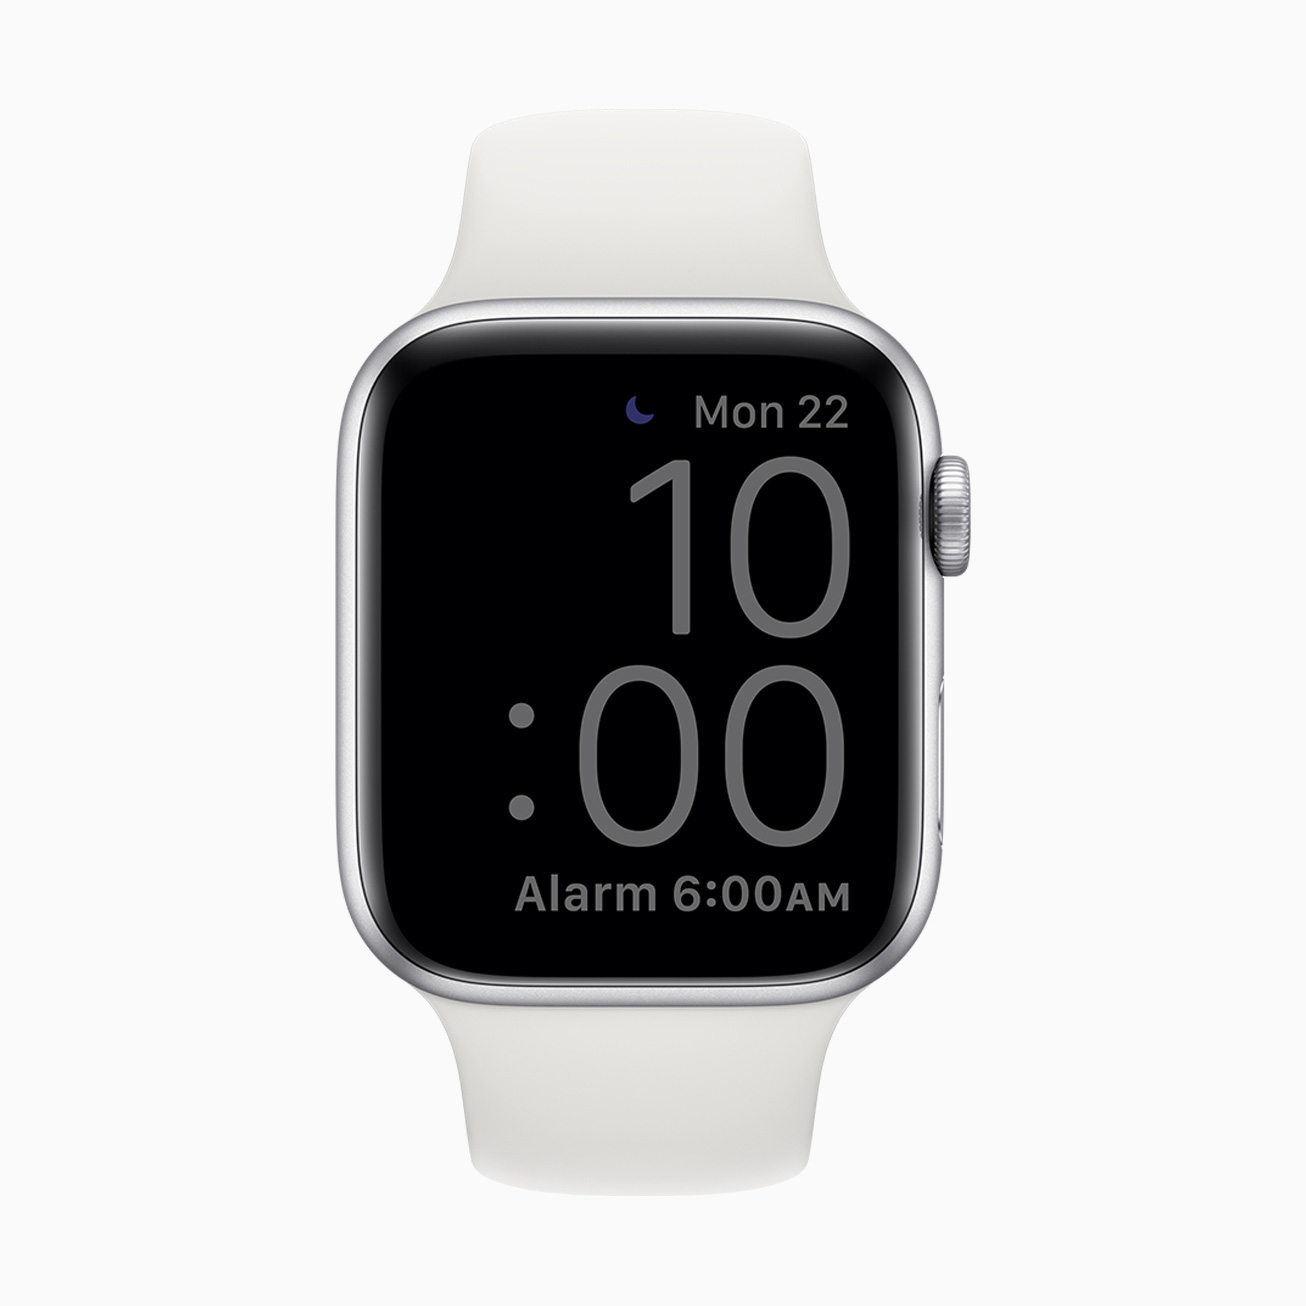 Watch OS 7 sleep mode